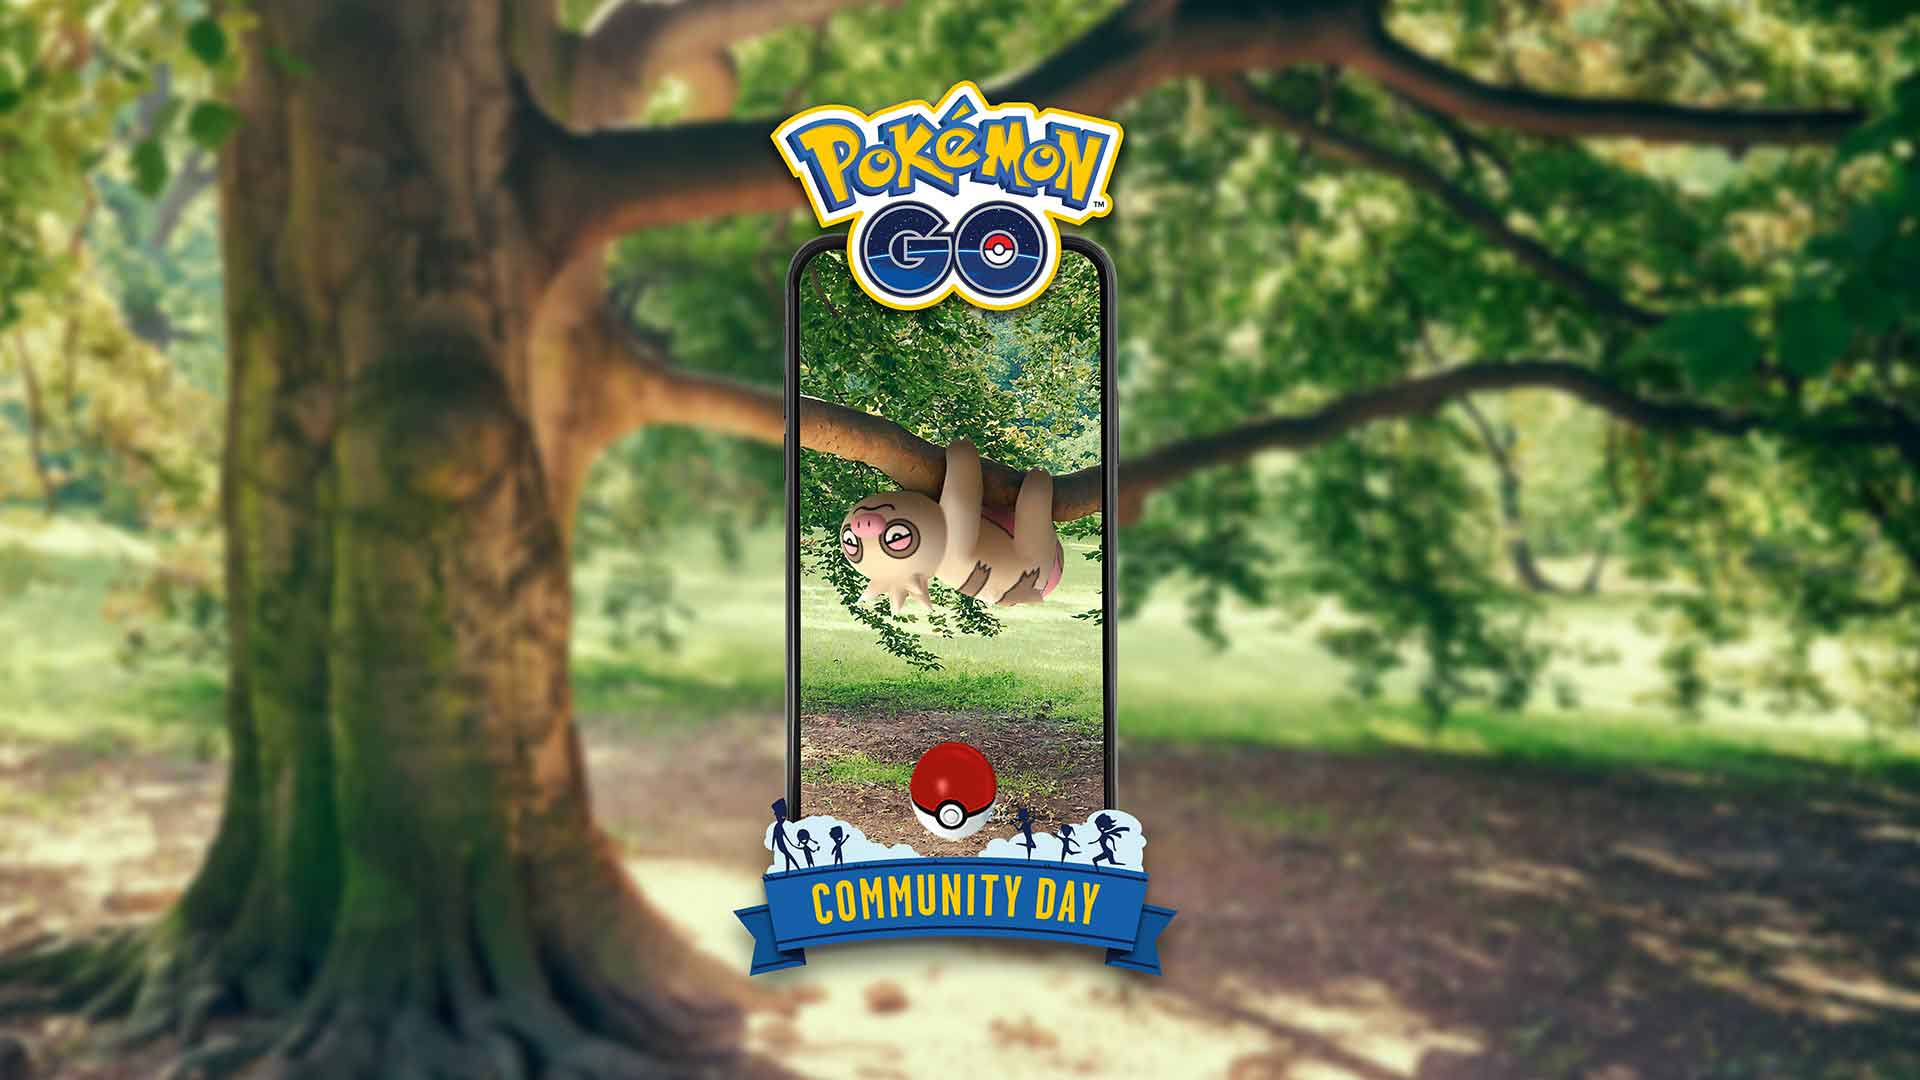 Don't slack off on June Community Day, featuring Slakoth!